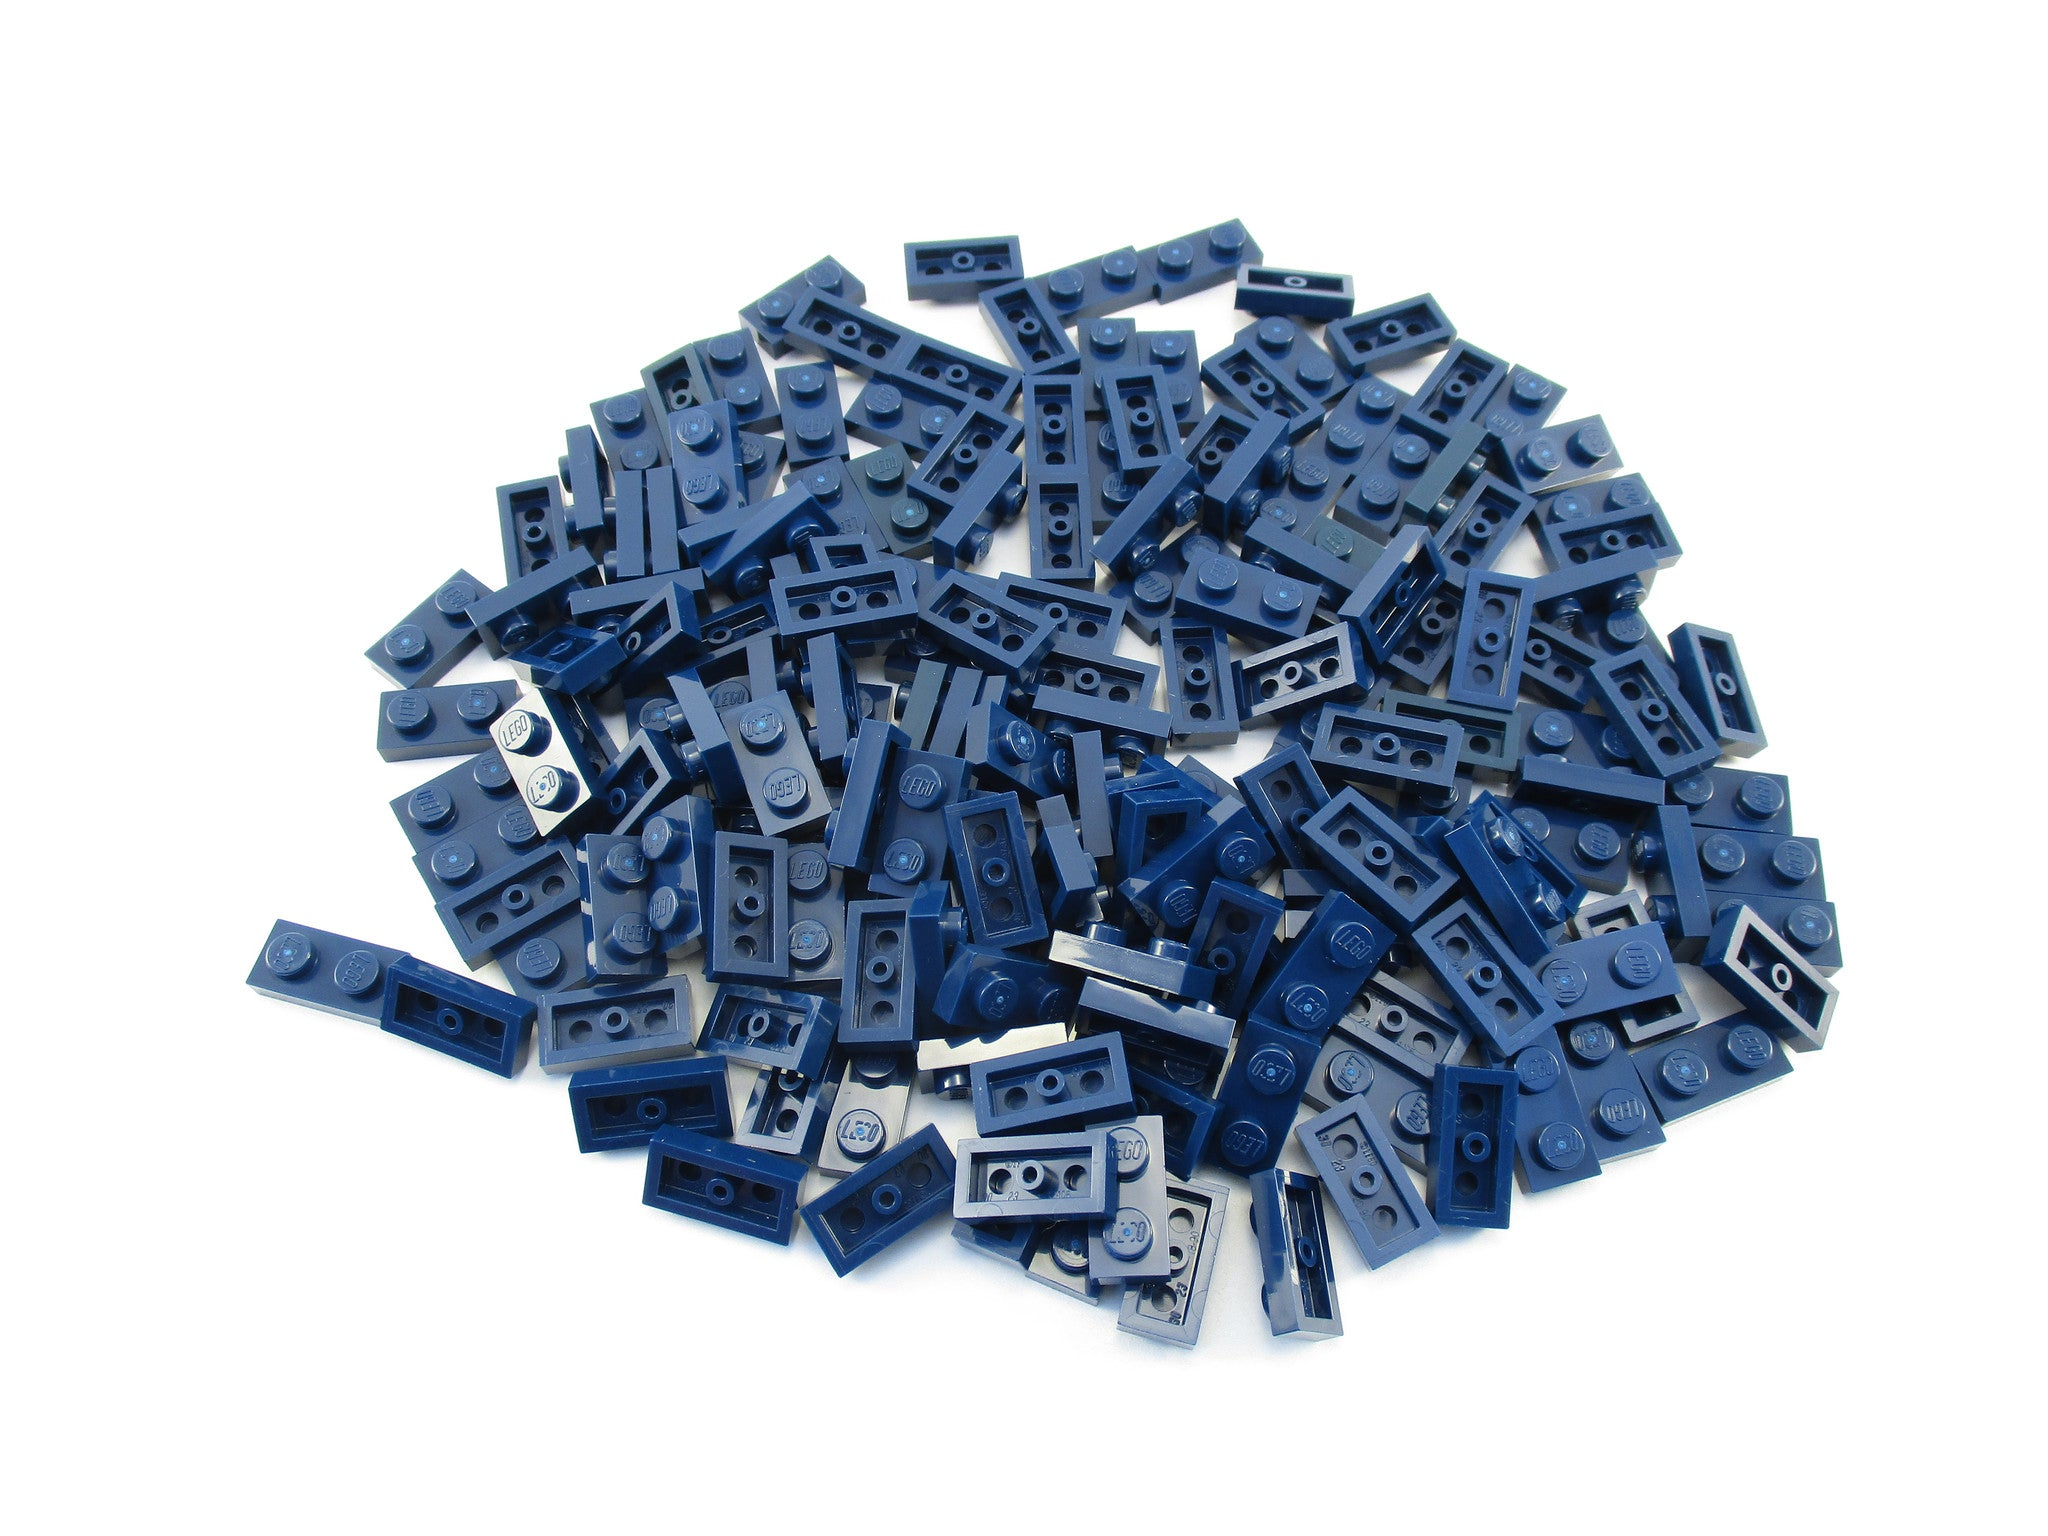 LEGO Dark Blue Plate 1x2 Lot of 100 Parts Pieces 3023